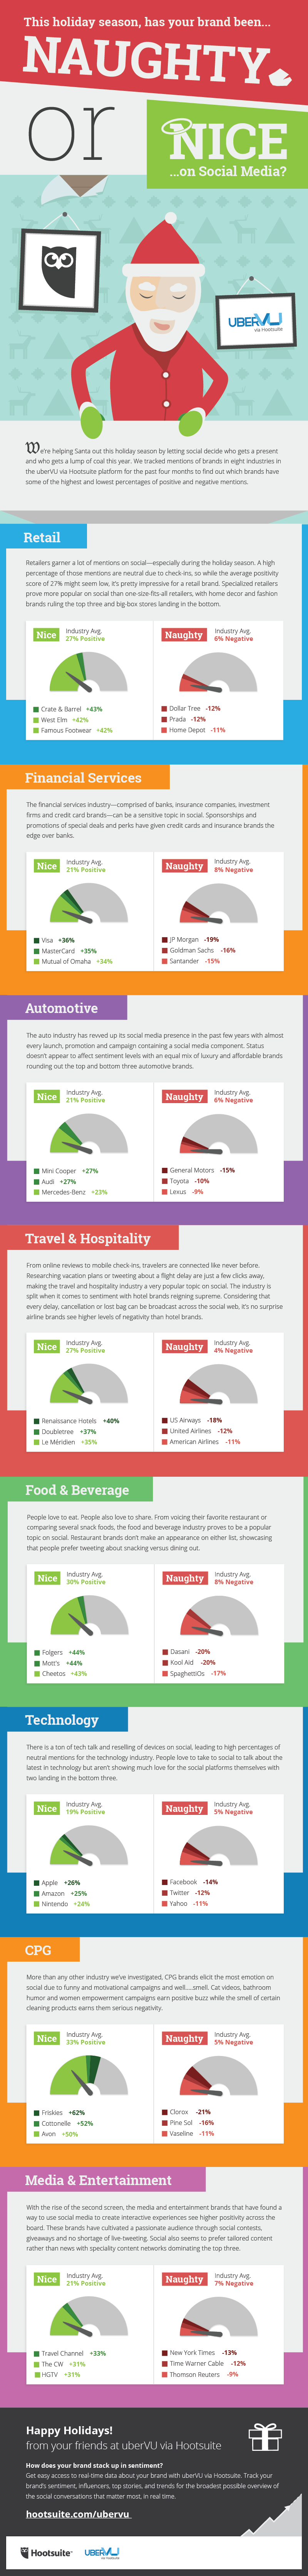 brand social media sentiment infographic